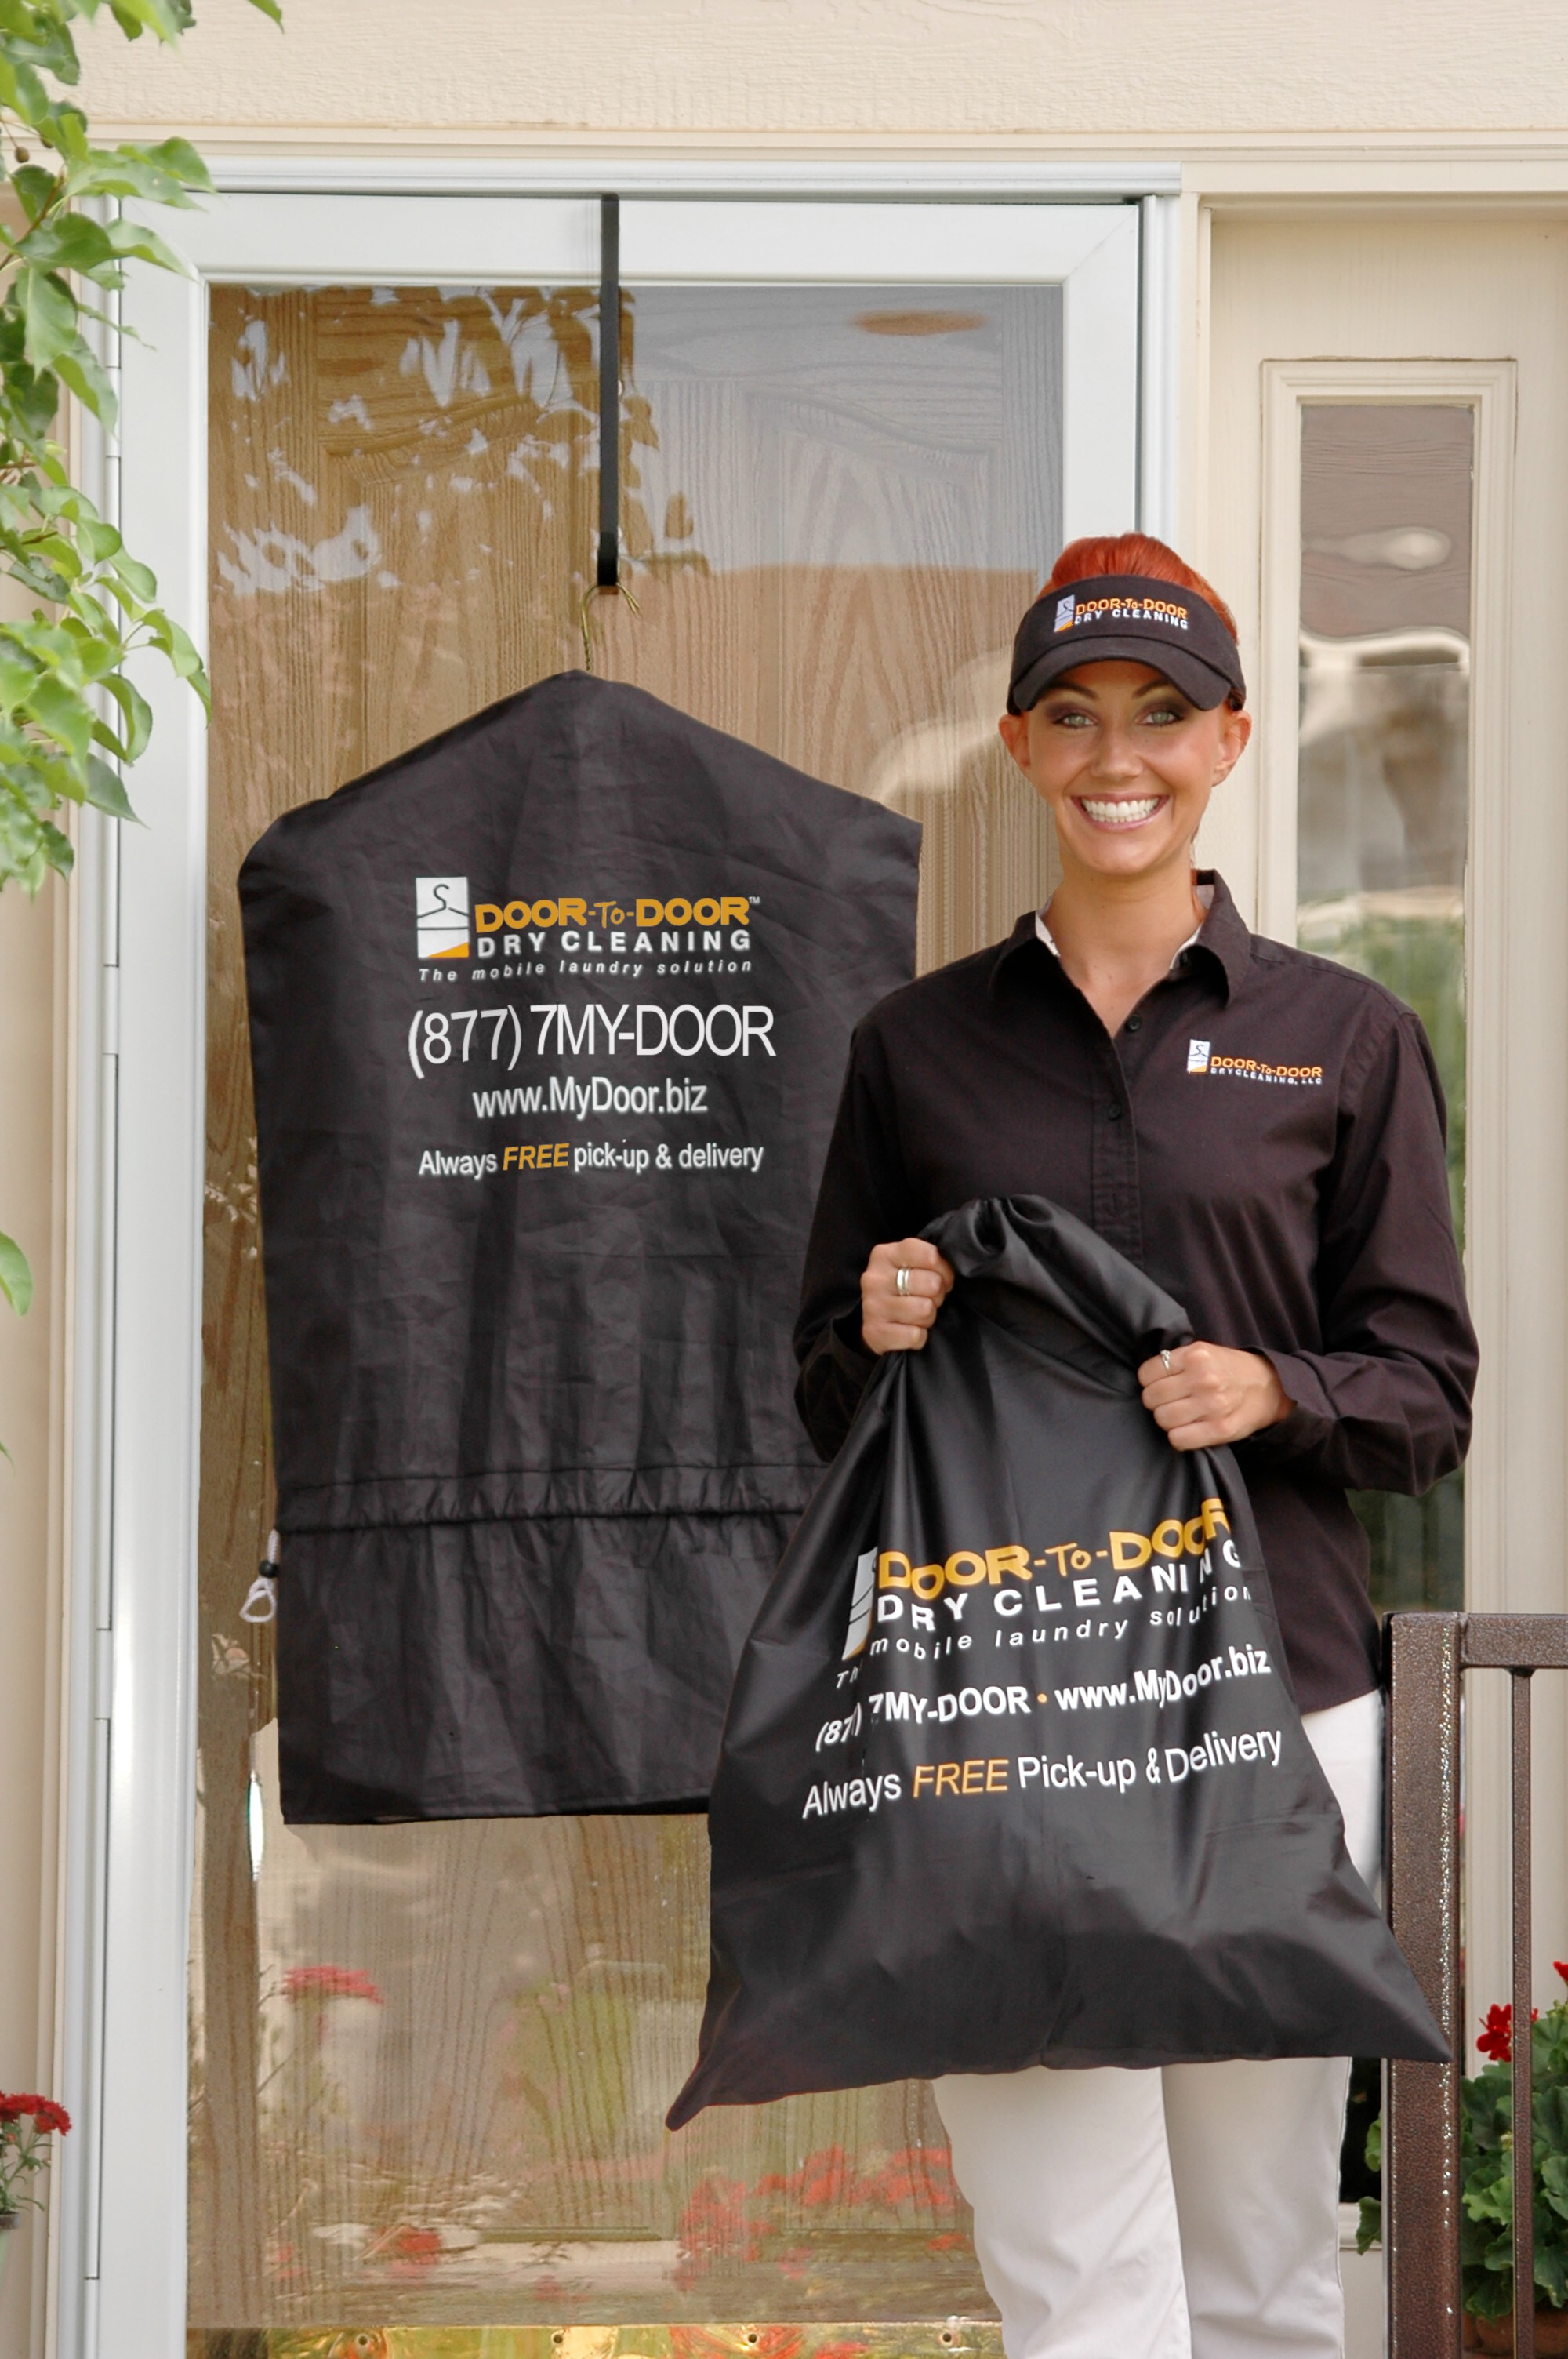 Lovely Press Release Attachment Door To Door Dry Cleaning Seminar Announcement  Press Release